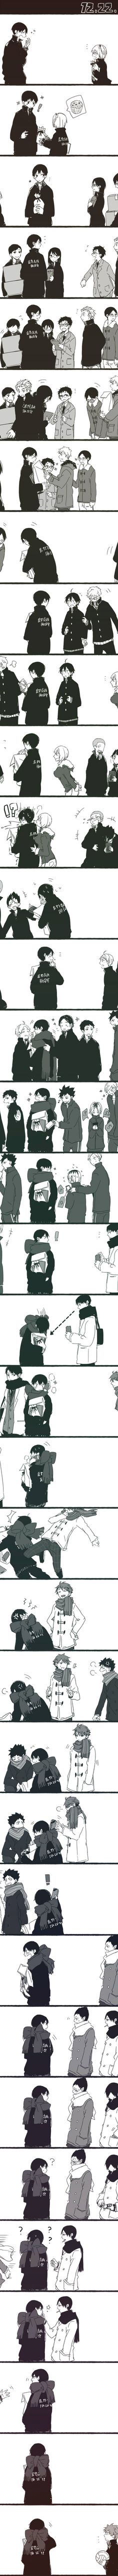 Kageyama's birthday - Haikyuu I don't know why I love this so much. Hinata looks partly dejected and partly confused.